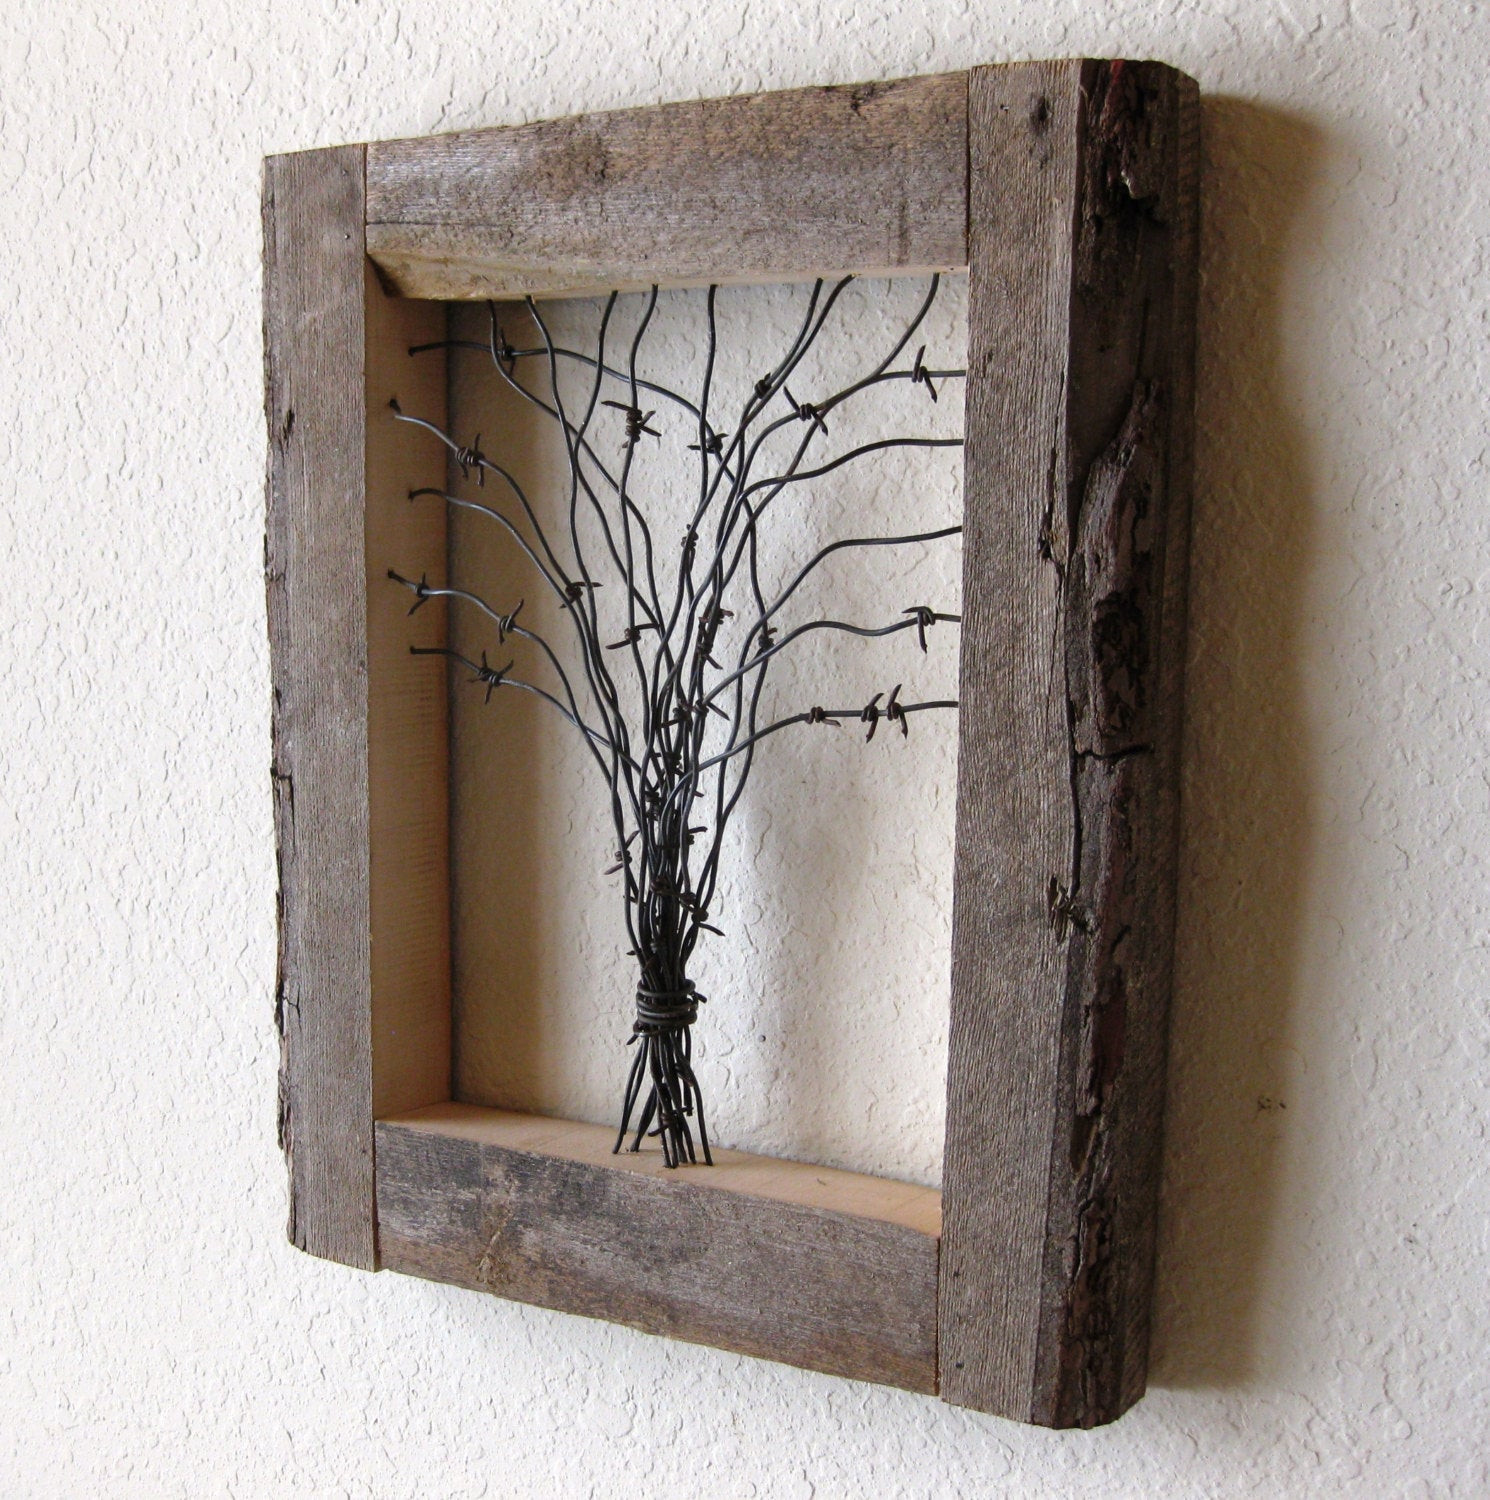 Wood Craft Ideas  Reclaimed Barn Wood and Barbed Wire Tree Wall Art